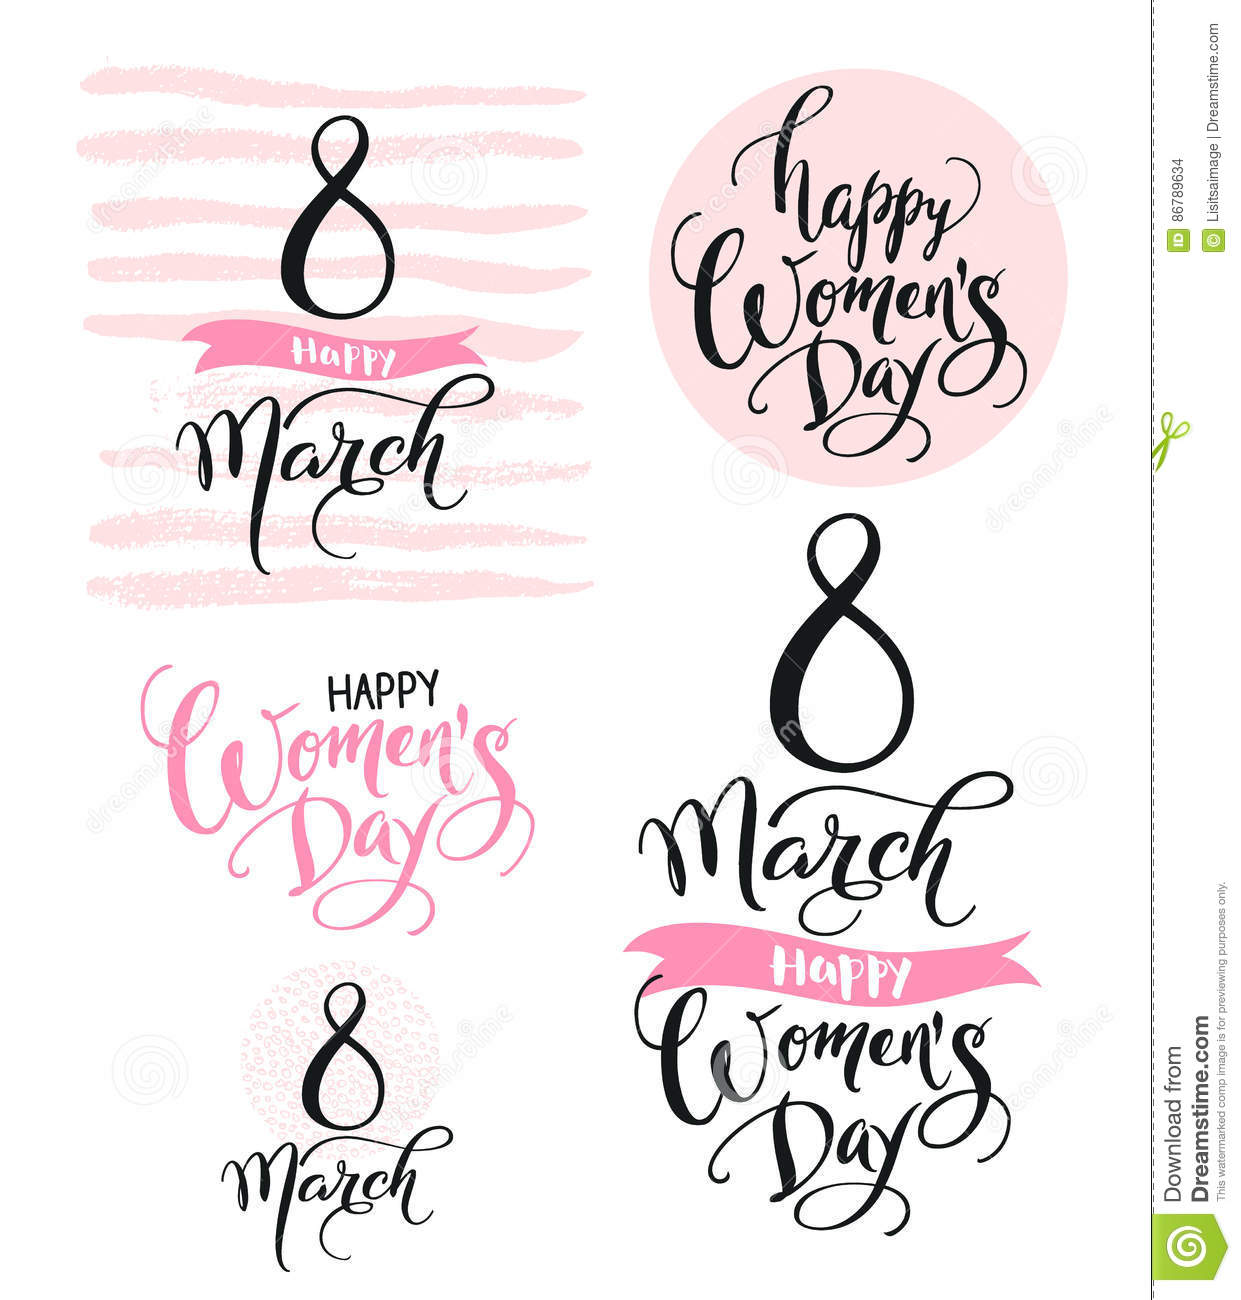 8 March. Happy Women`s Day. Collection of beautiful handwritten words and hand drawn elements in pink color. Vector